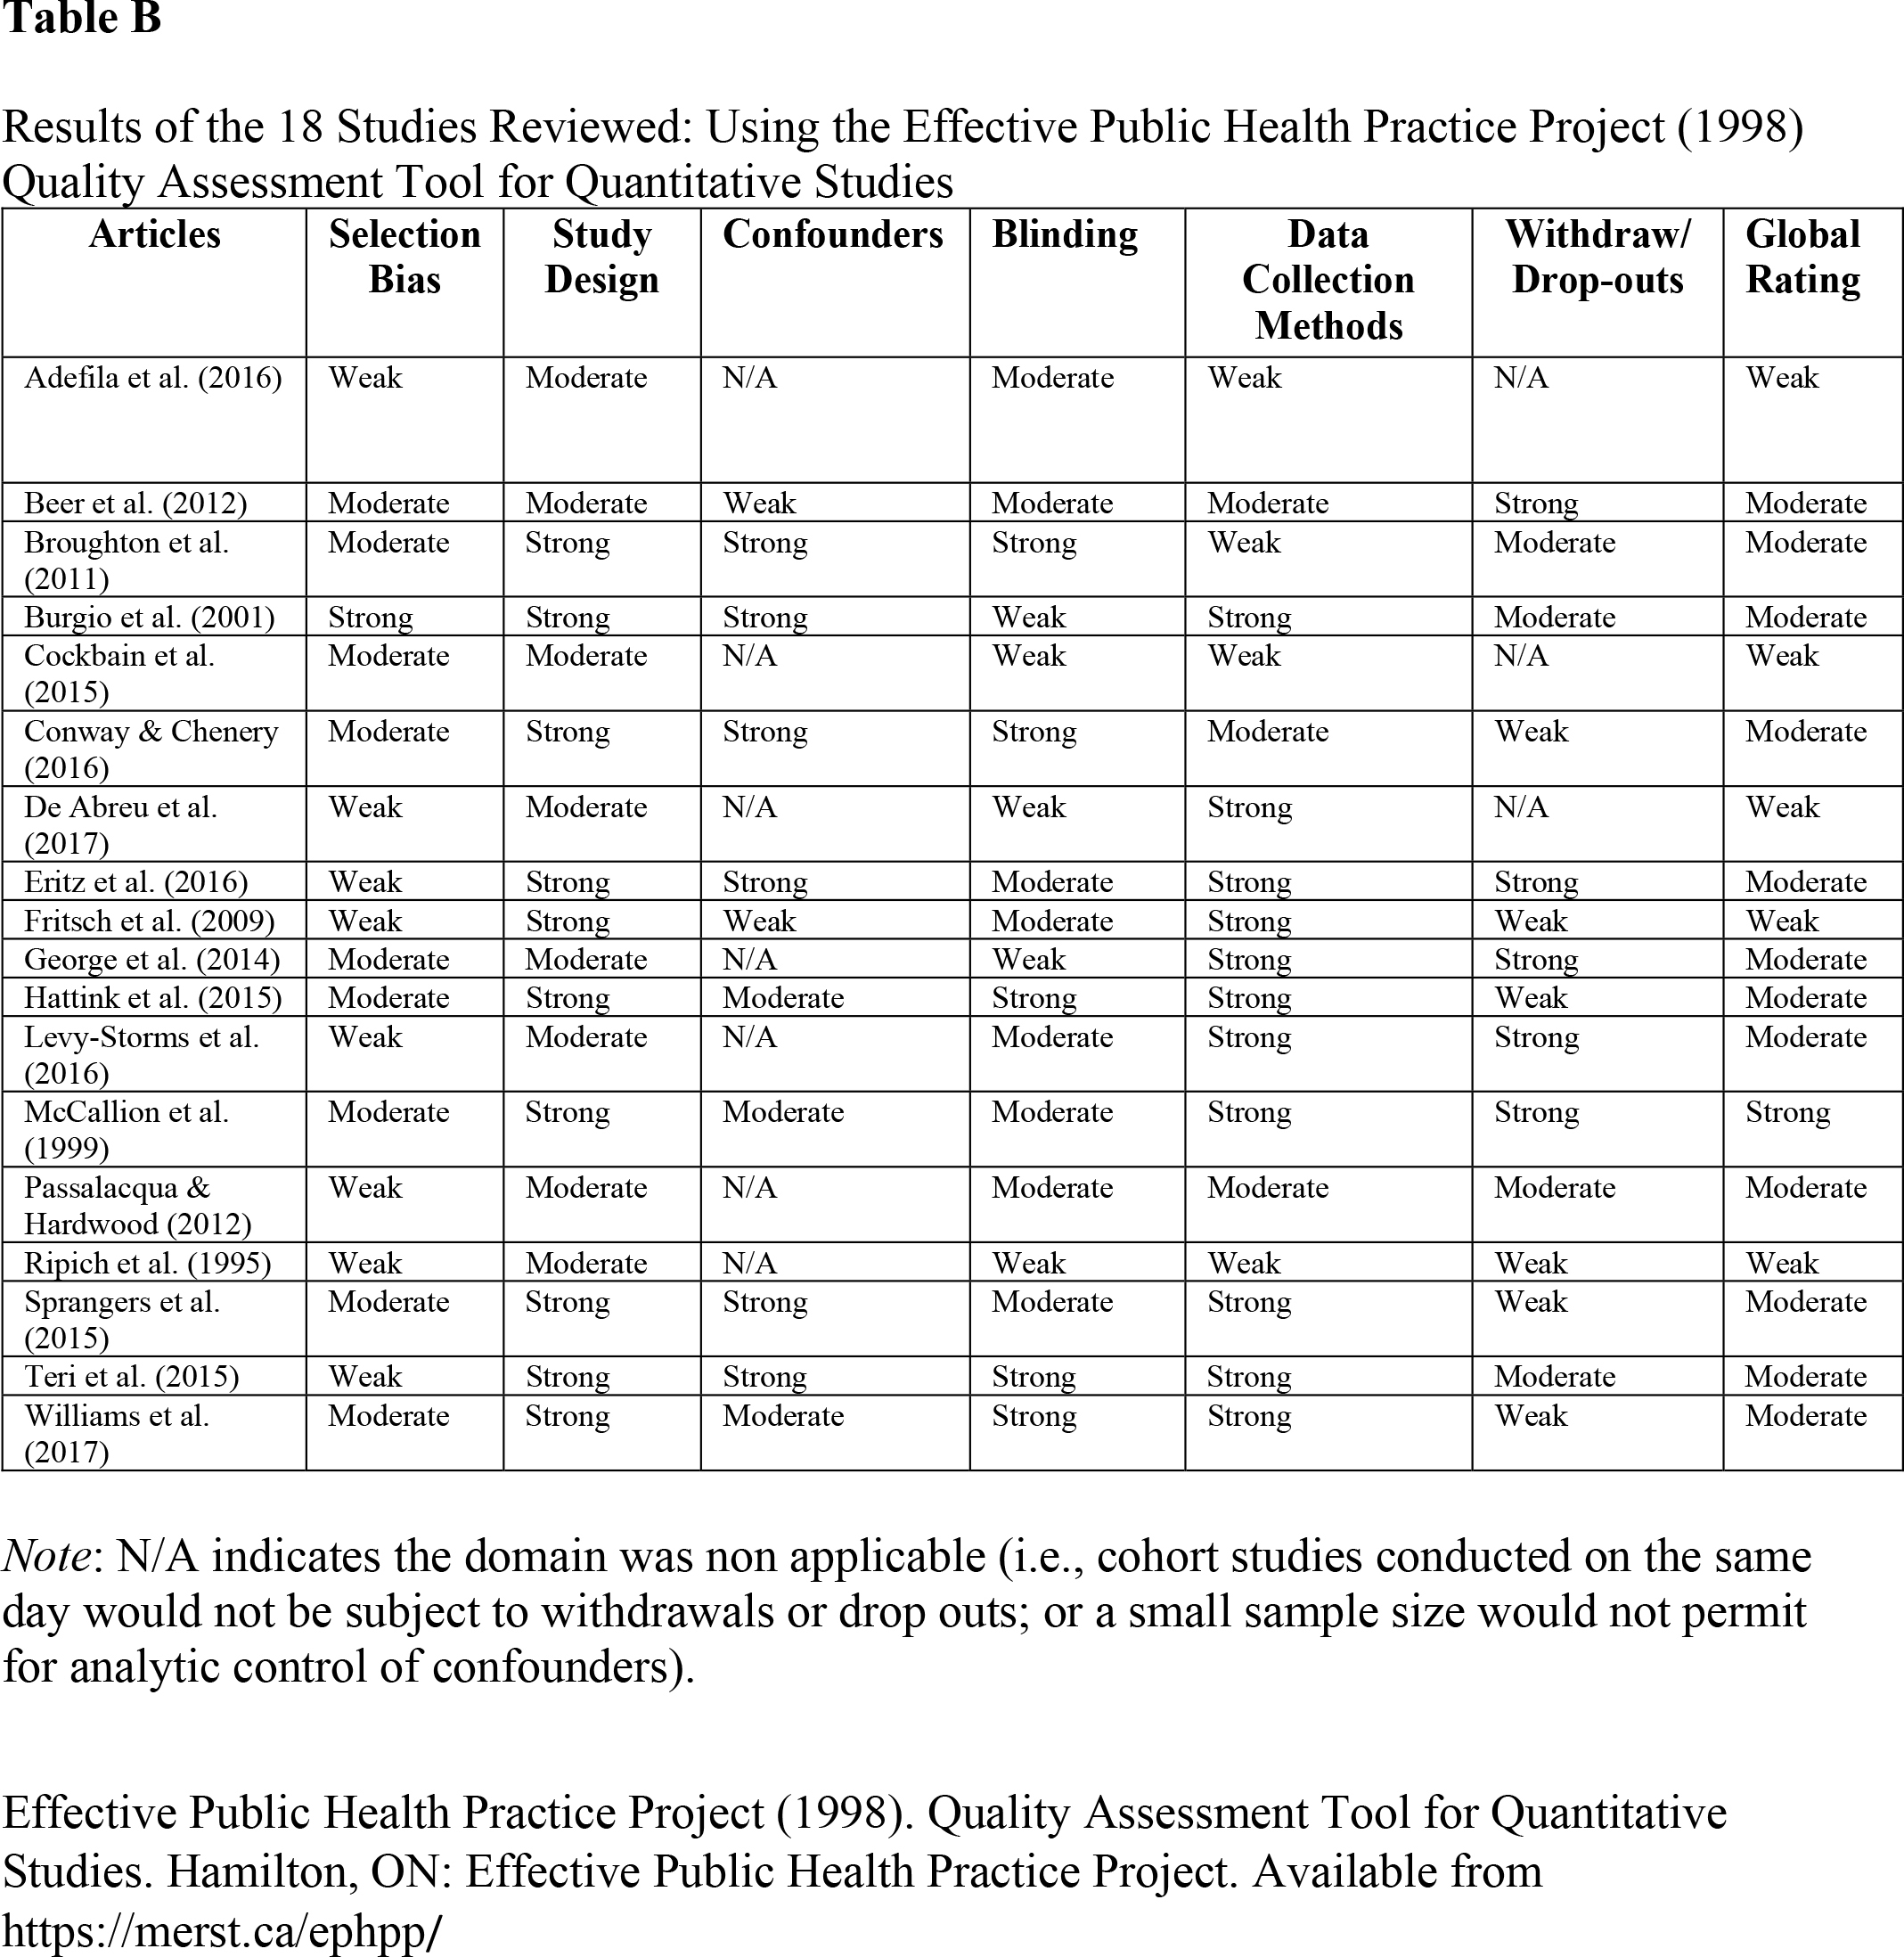 Results of the 18 Studies Reviewed: Using the Effective Public Health Practice Project (1998) Quality Assessment Tool for Quantitative Studies